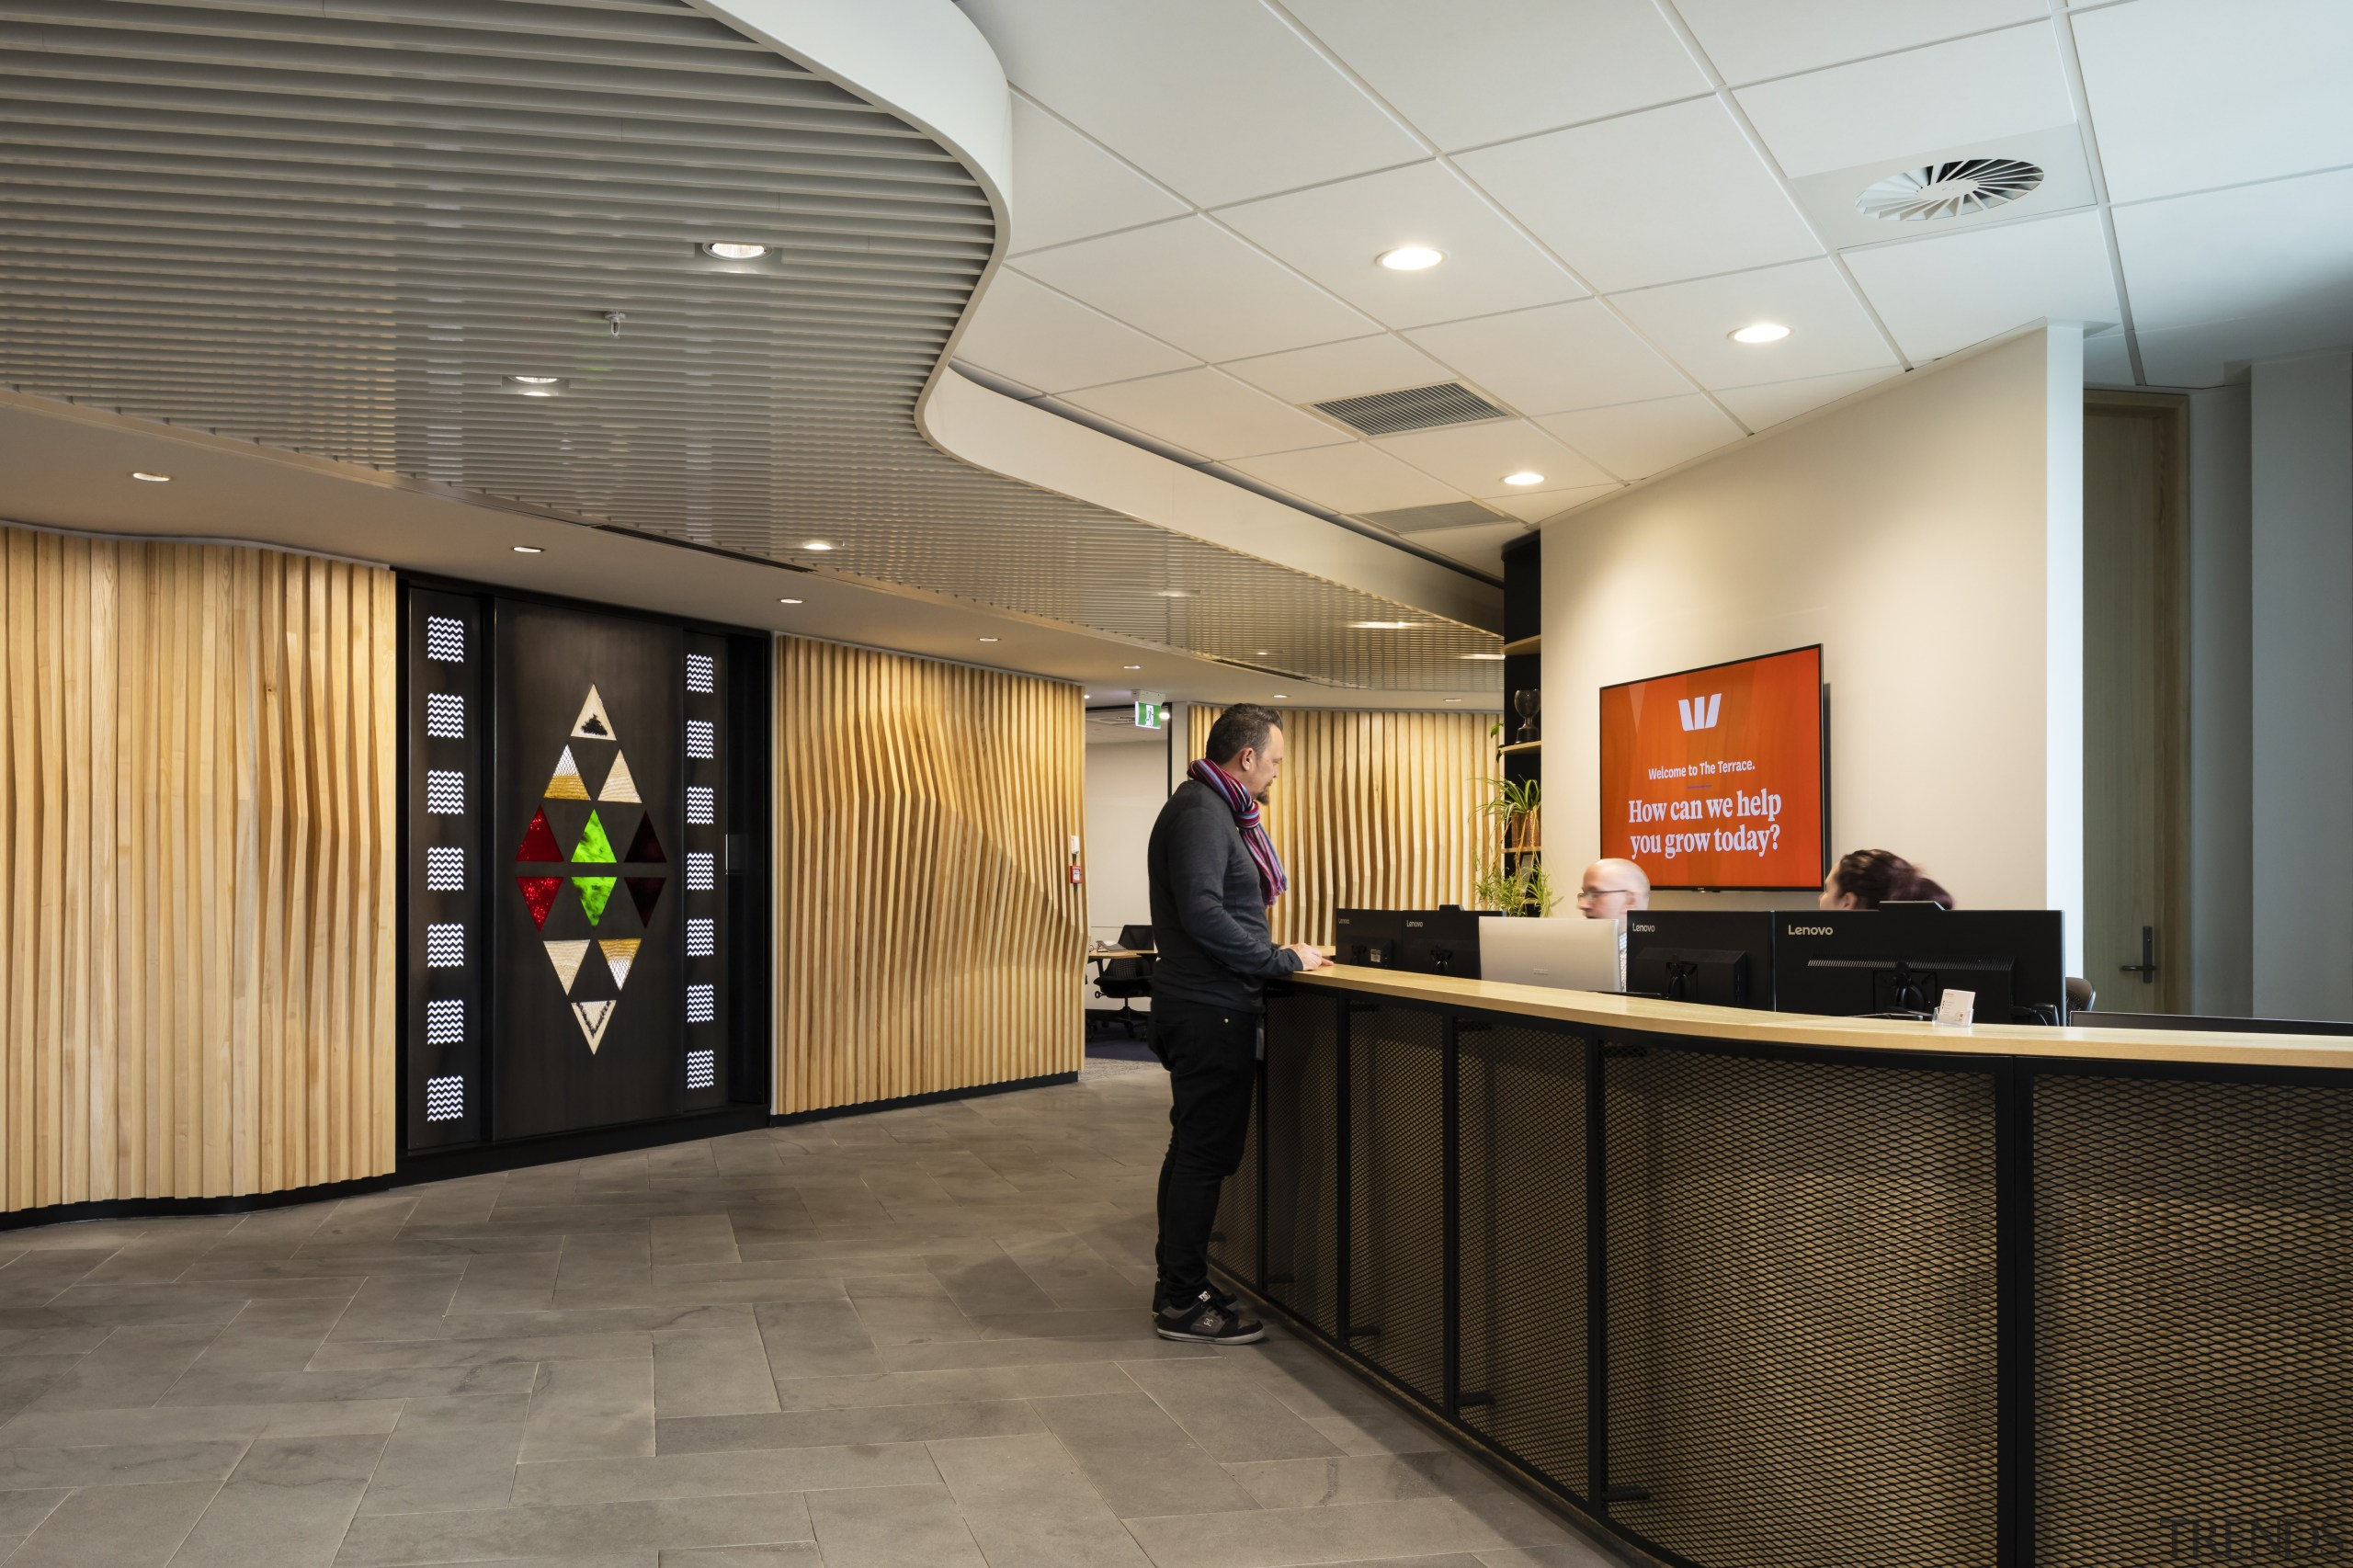 Temperzone supplied Smartemp LMC-AD Linear Multi-stream Diffusers as architecture, building, ceiling, floor, flooring, interior design, lobby, office, room, gray